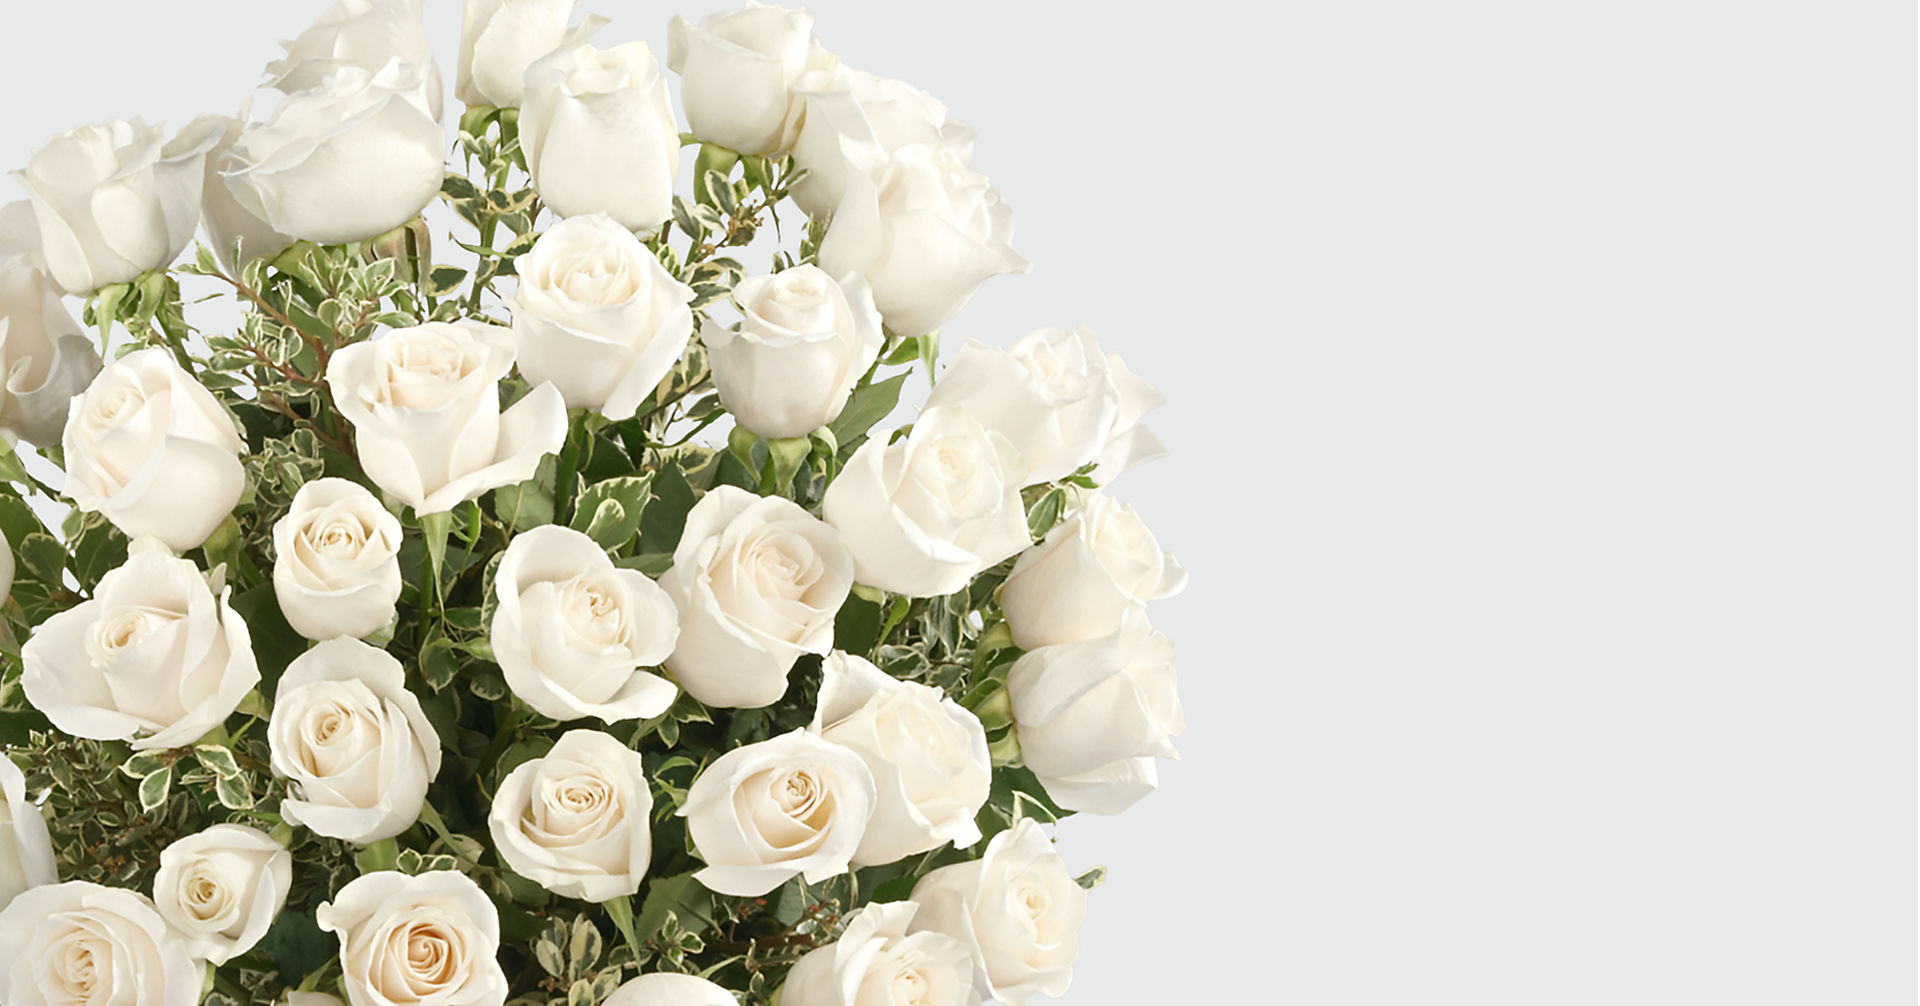 Clarity Luxury Rose Bouquet - 24-inch Premium Long-Stemmed Roses - Image 3 Of 4